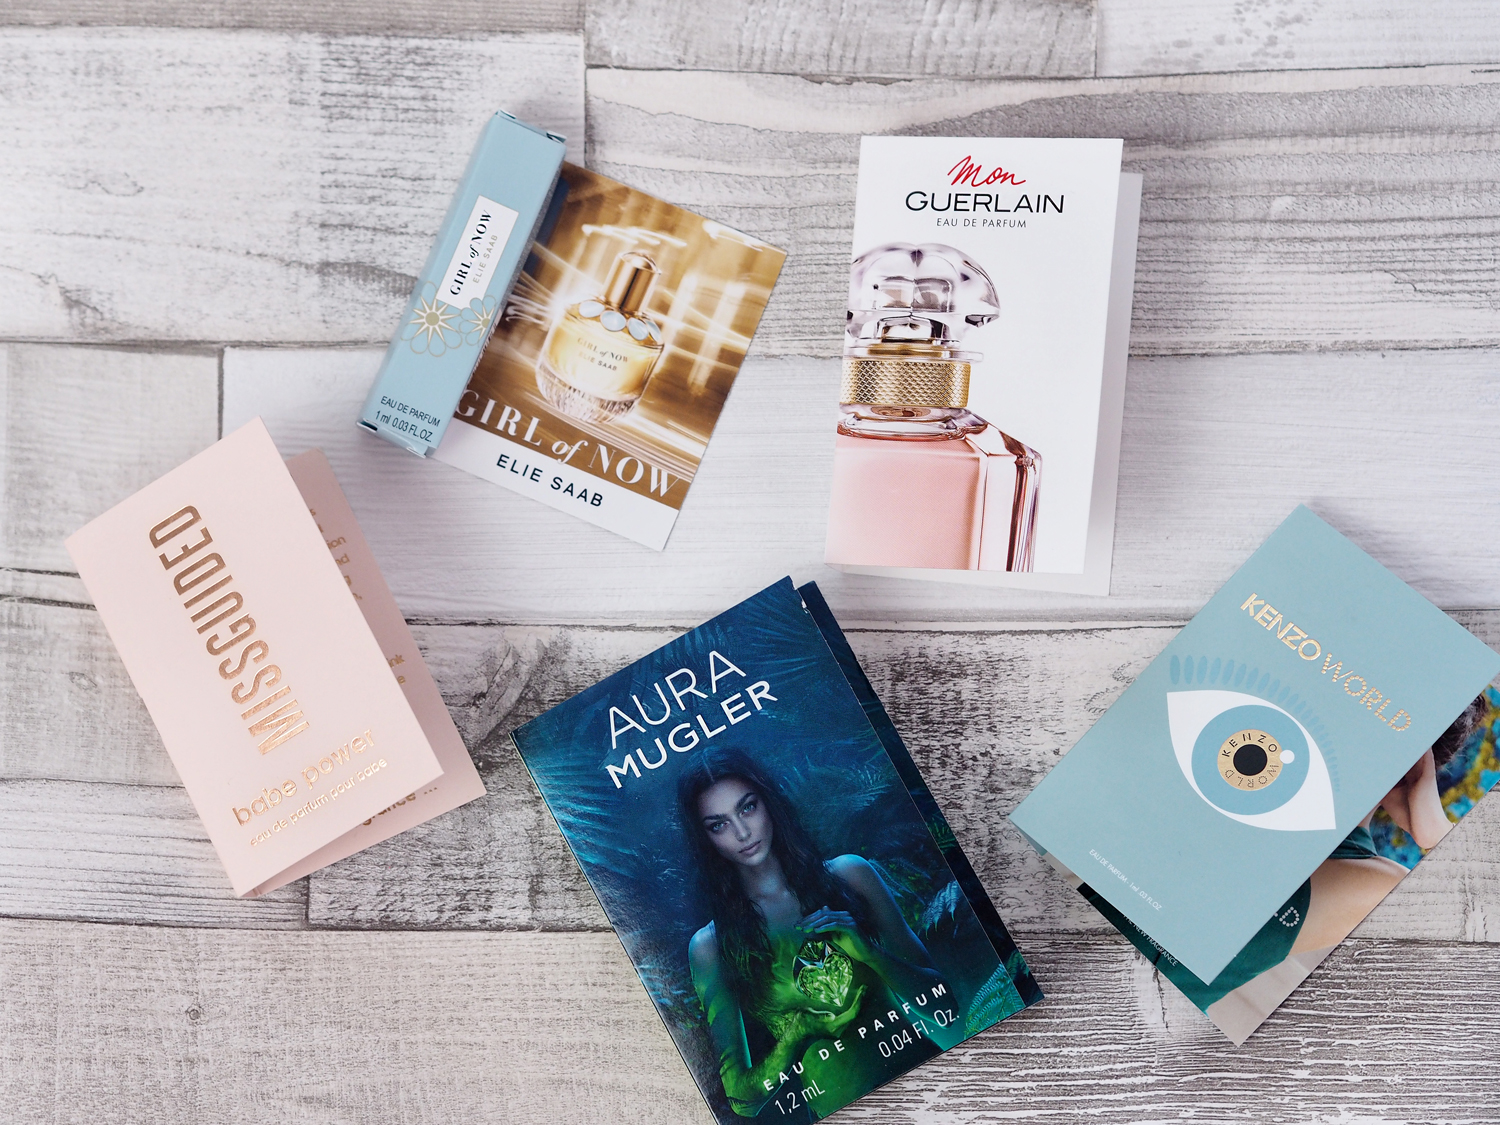 Trying new summer perfume launches